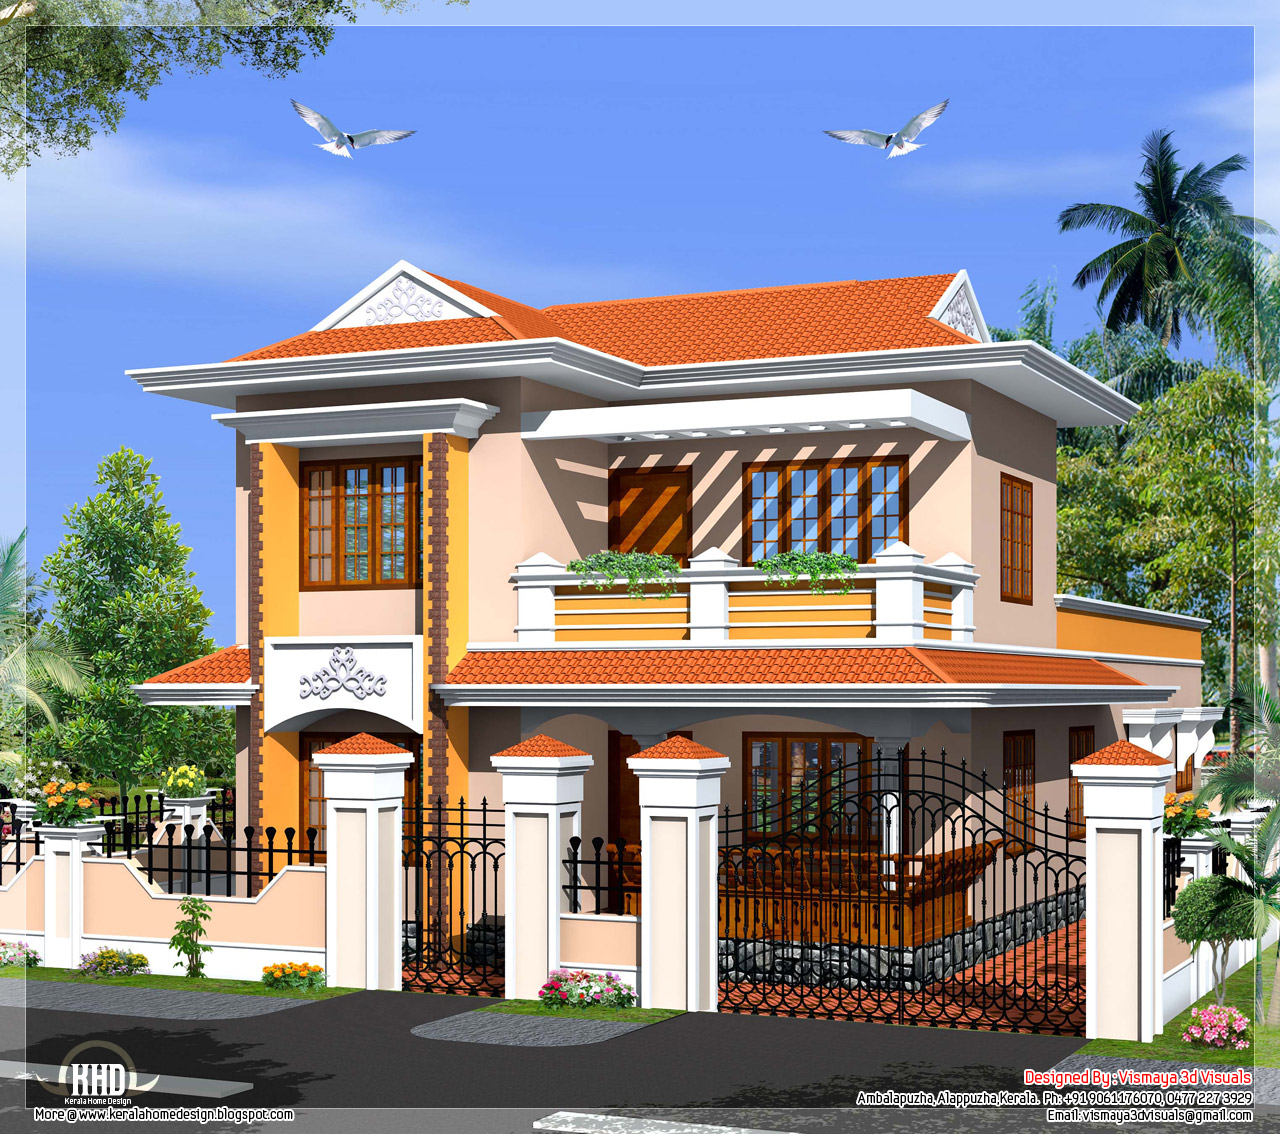 Kerala model villa in 2110 in square feet house design plans for Homes models and plans